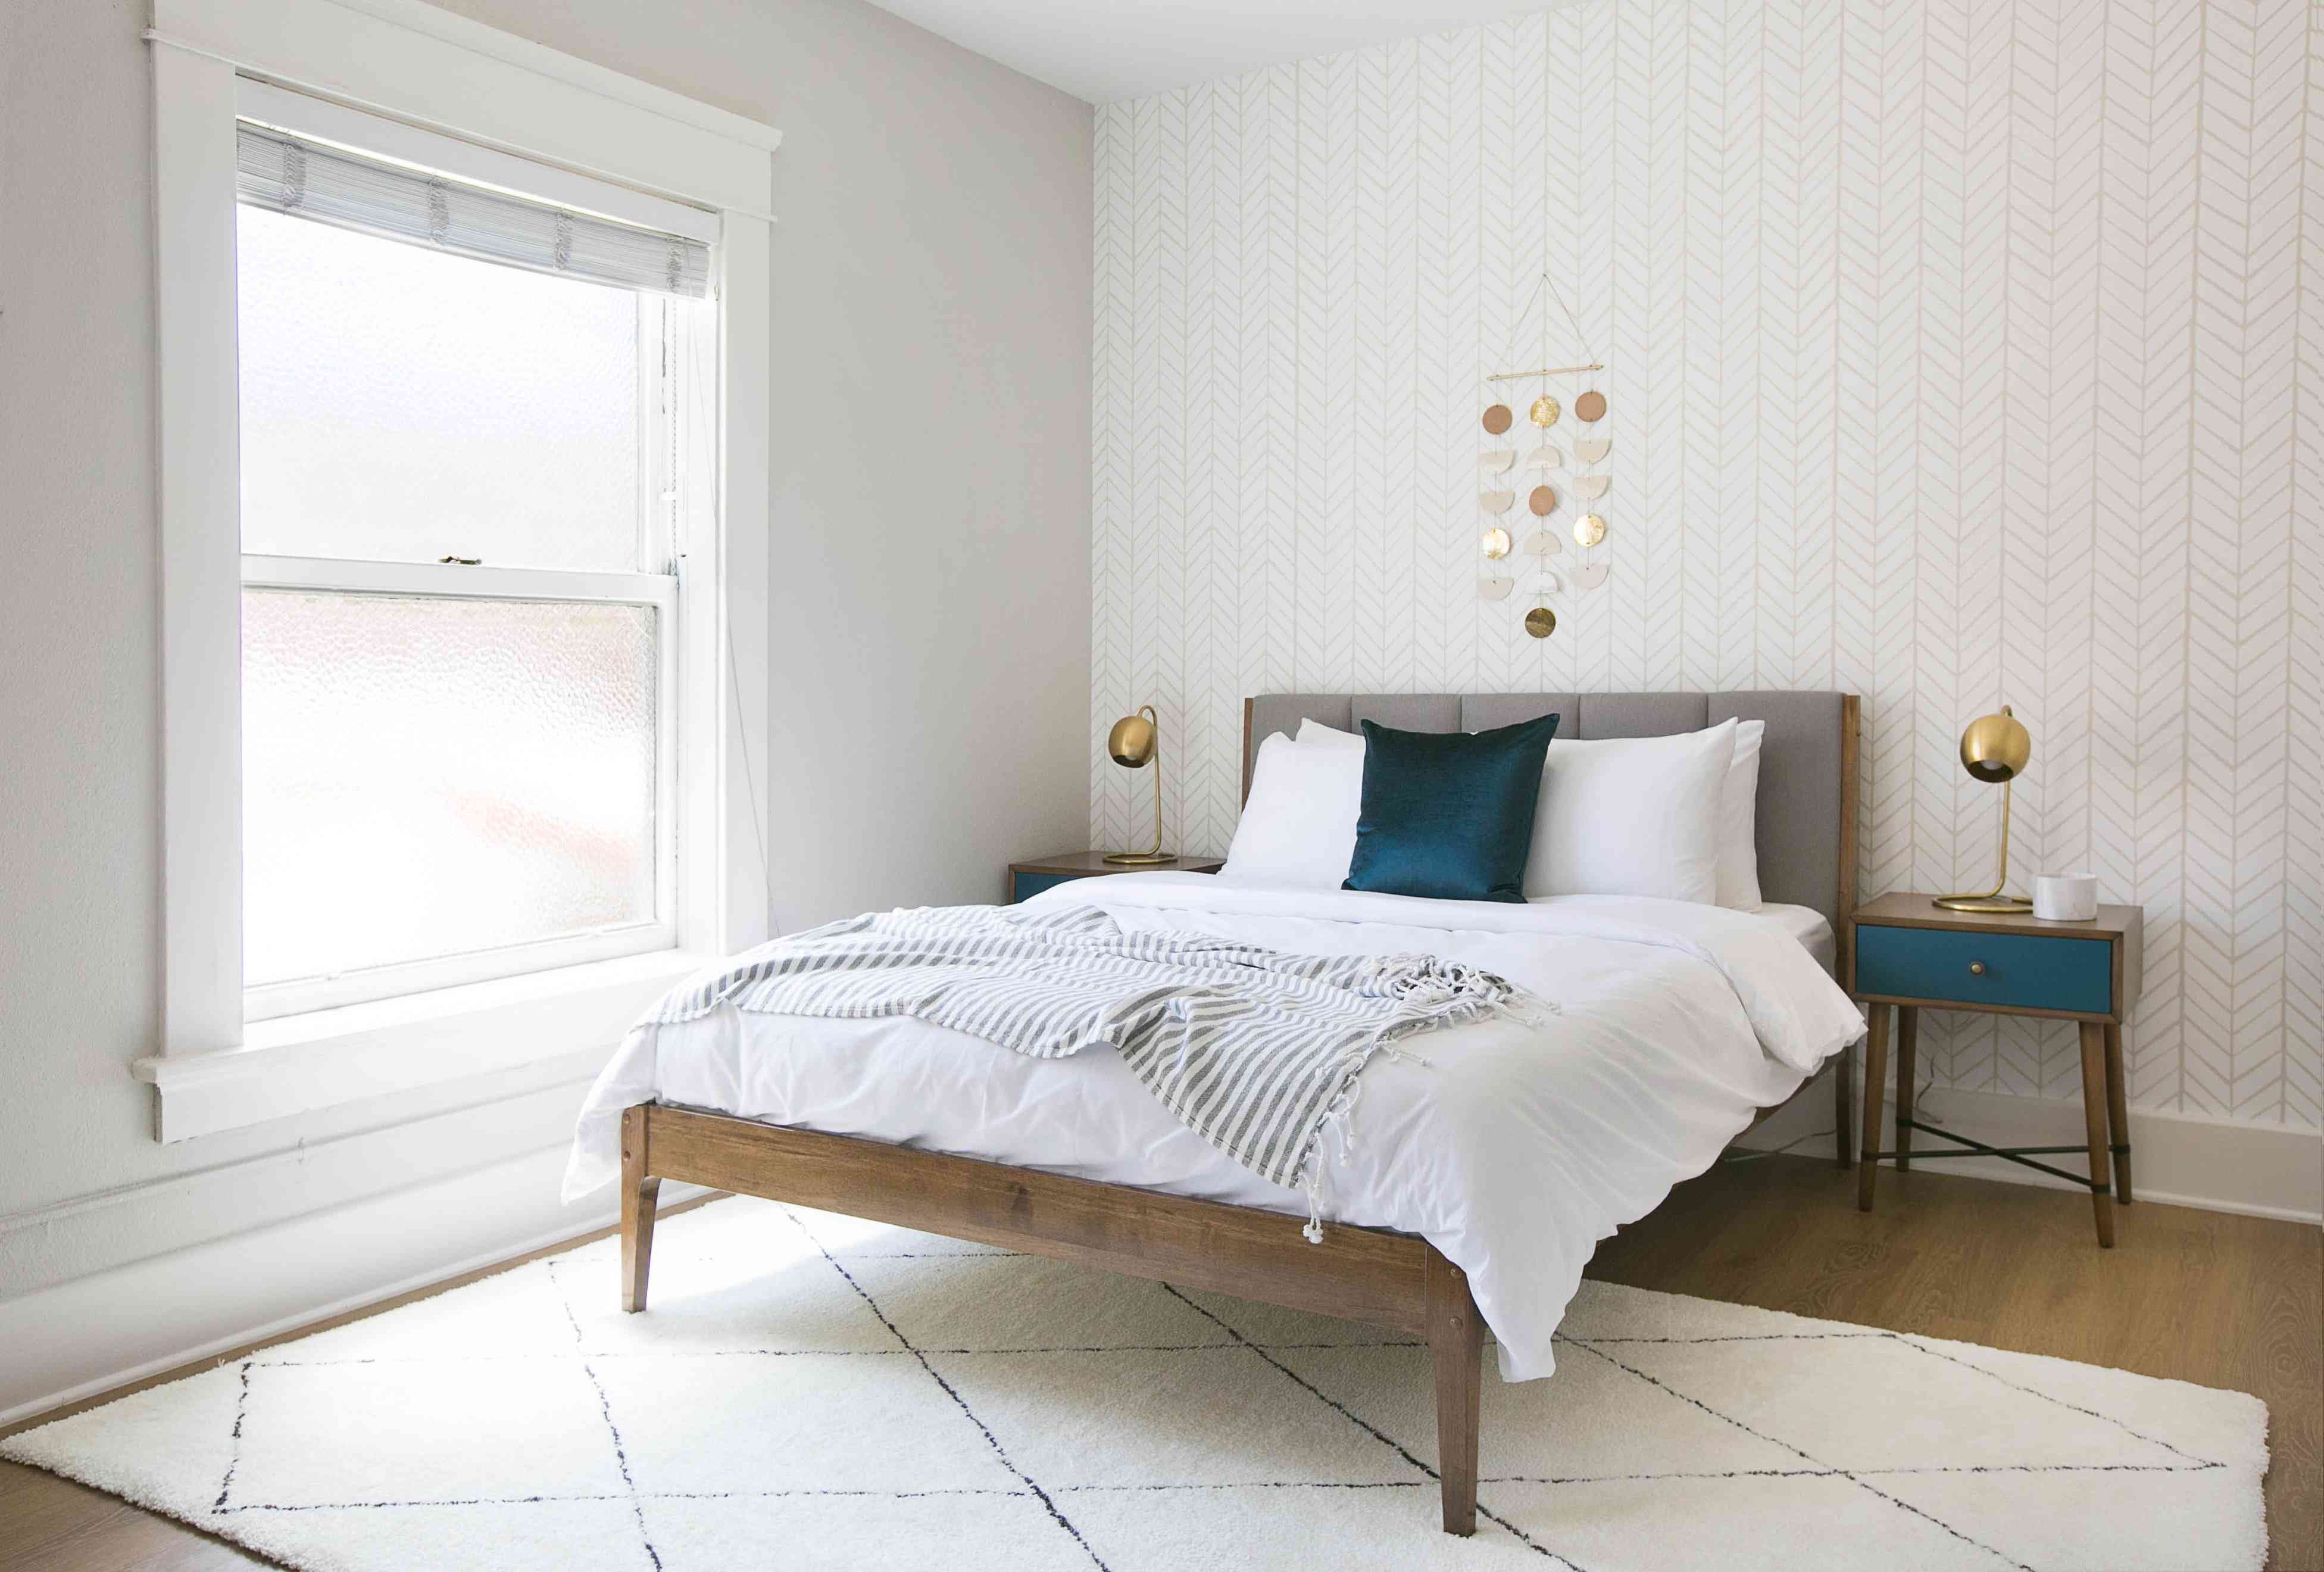 Gray and white bedroom with an aqua pop of color. Bedroom follows the 60-30-10 color rule